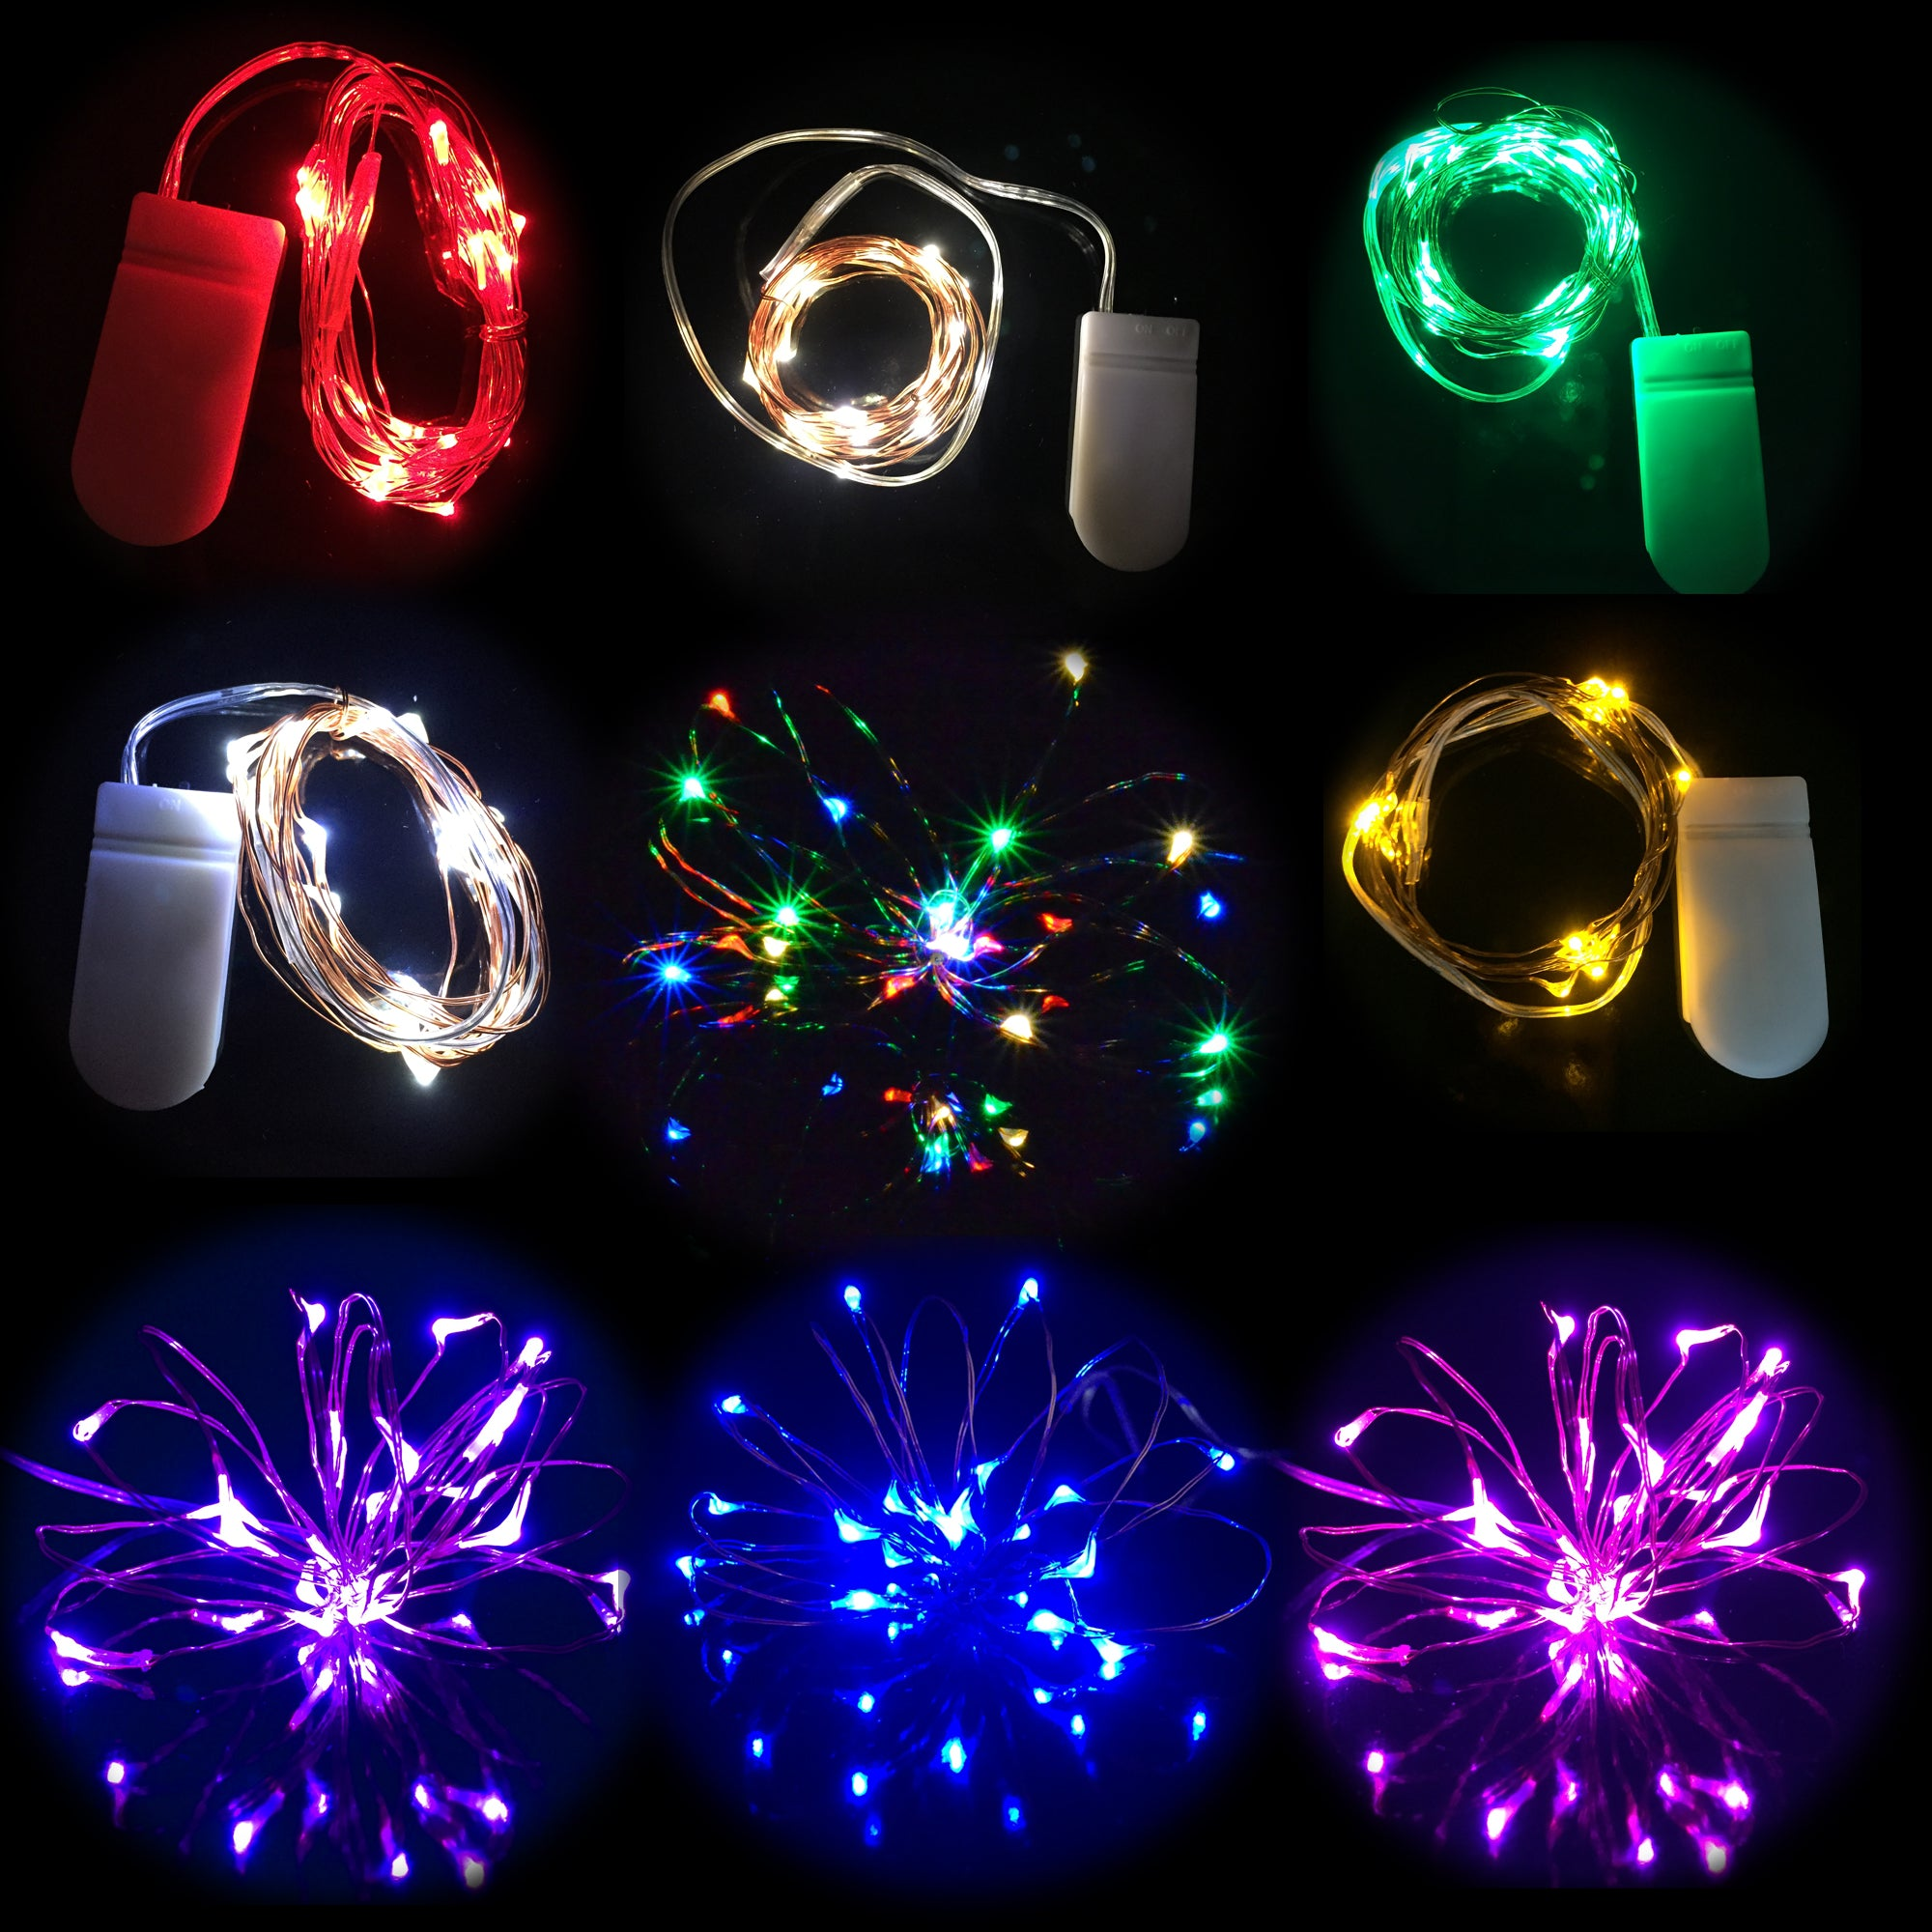 20 Micro Led Lights Cr2032 Battery Operated Fairy Light